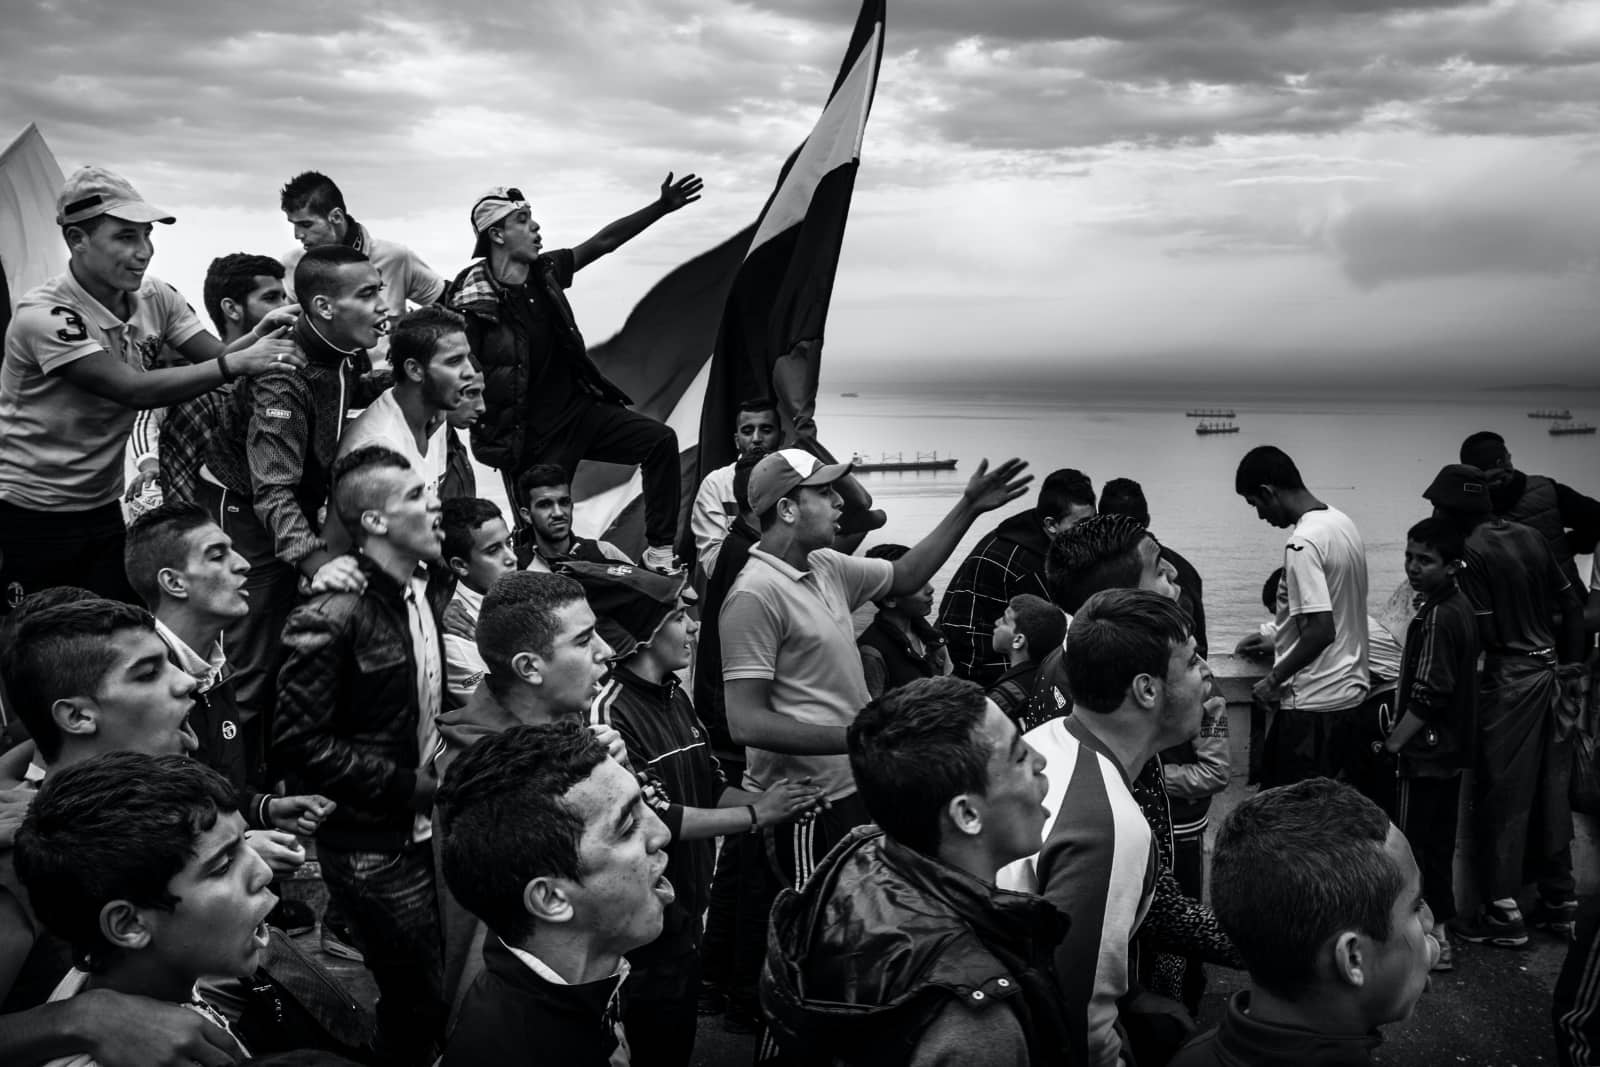 foto: Romain Laurendeau, winnaar World Press Photo Story of the Year - Kho, the Genesis of a Revolt